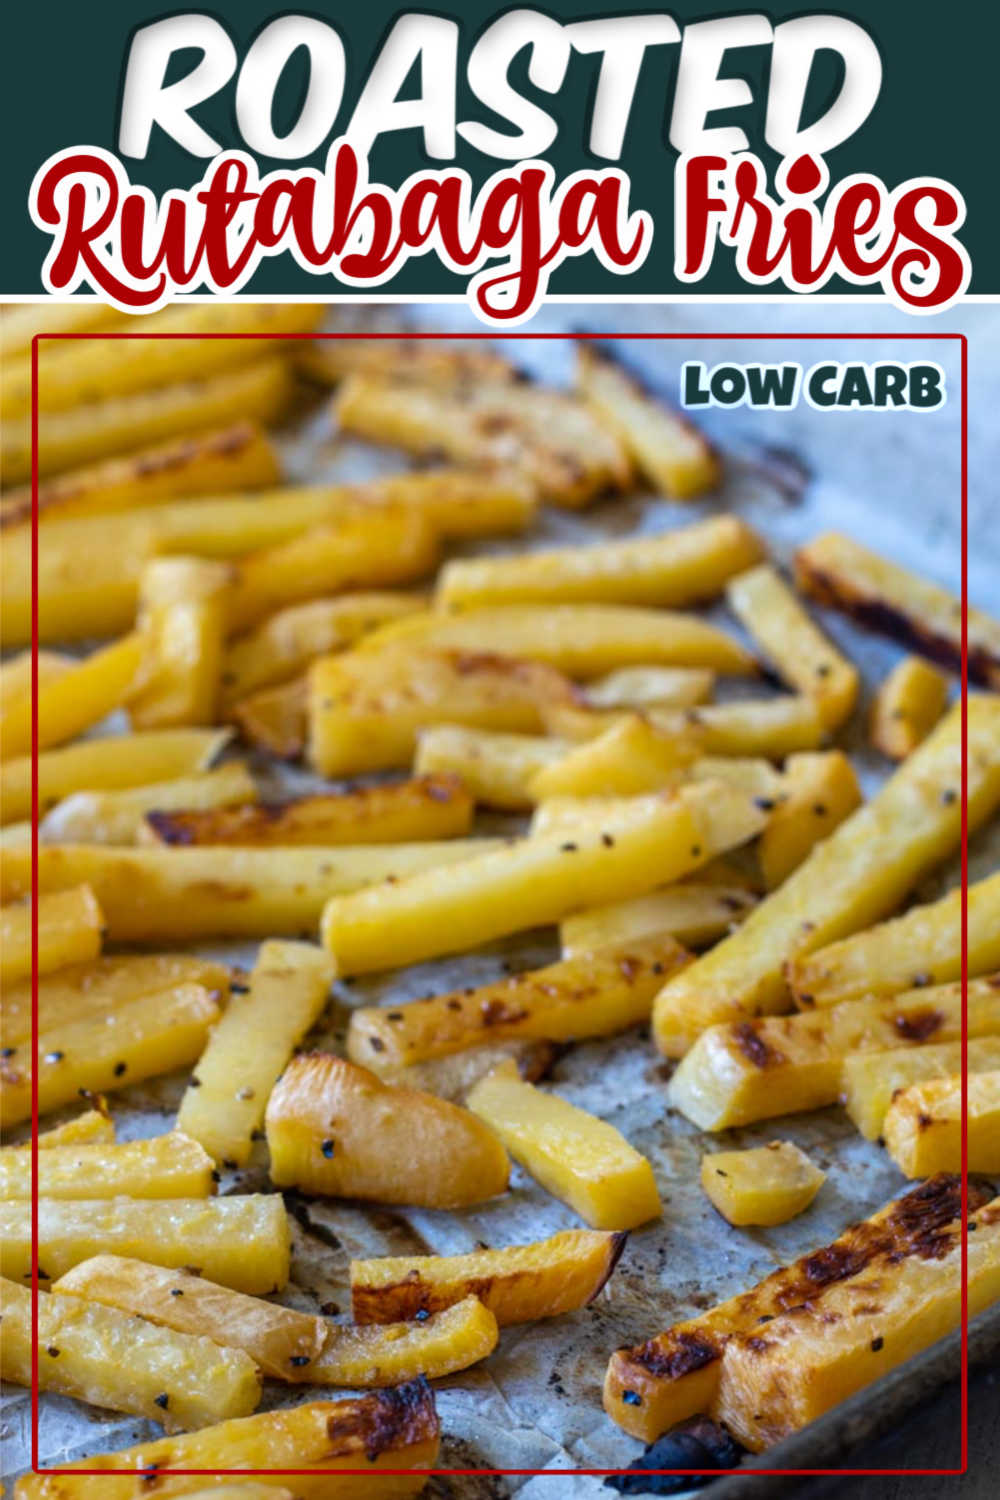 Amazing Roasted Rutabaga Fries - Low Carb- To Try Right Now {1 WW Point, Keto, Paleo, Vegan, Vegetarian, Whole30, Gluten-Free}